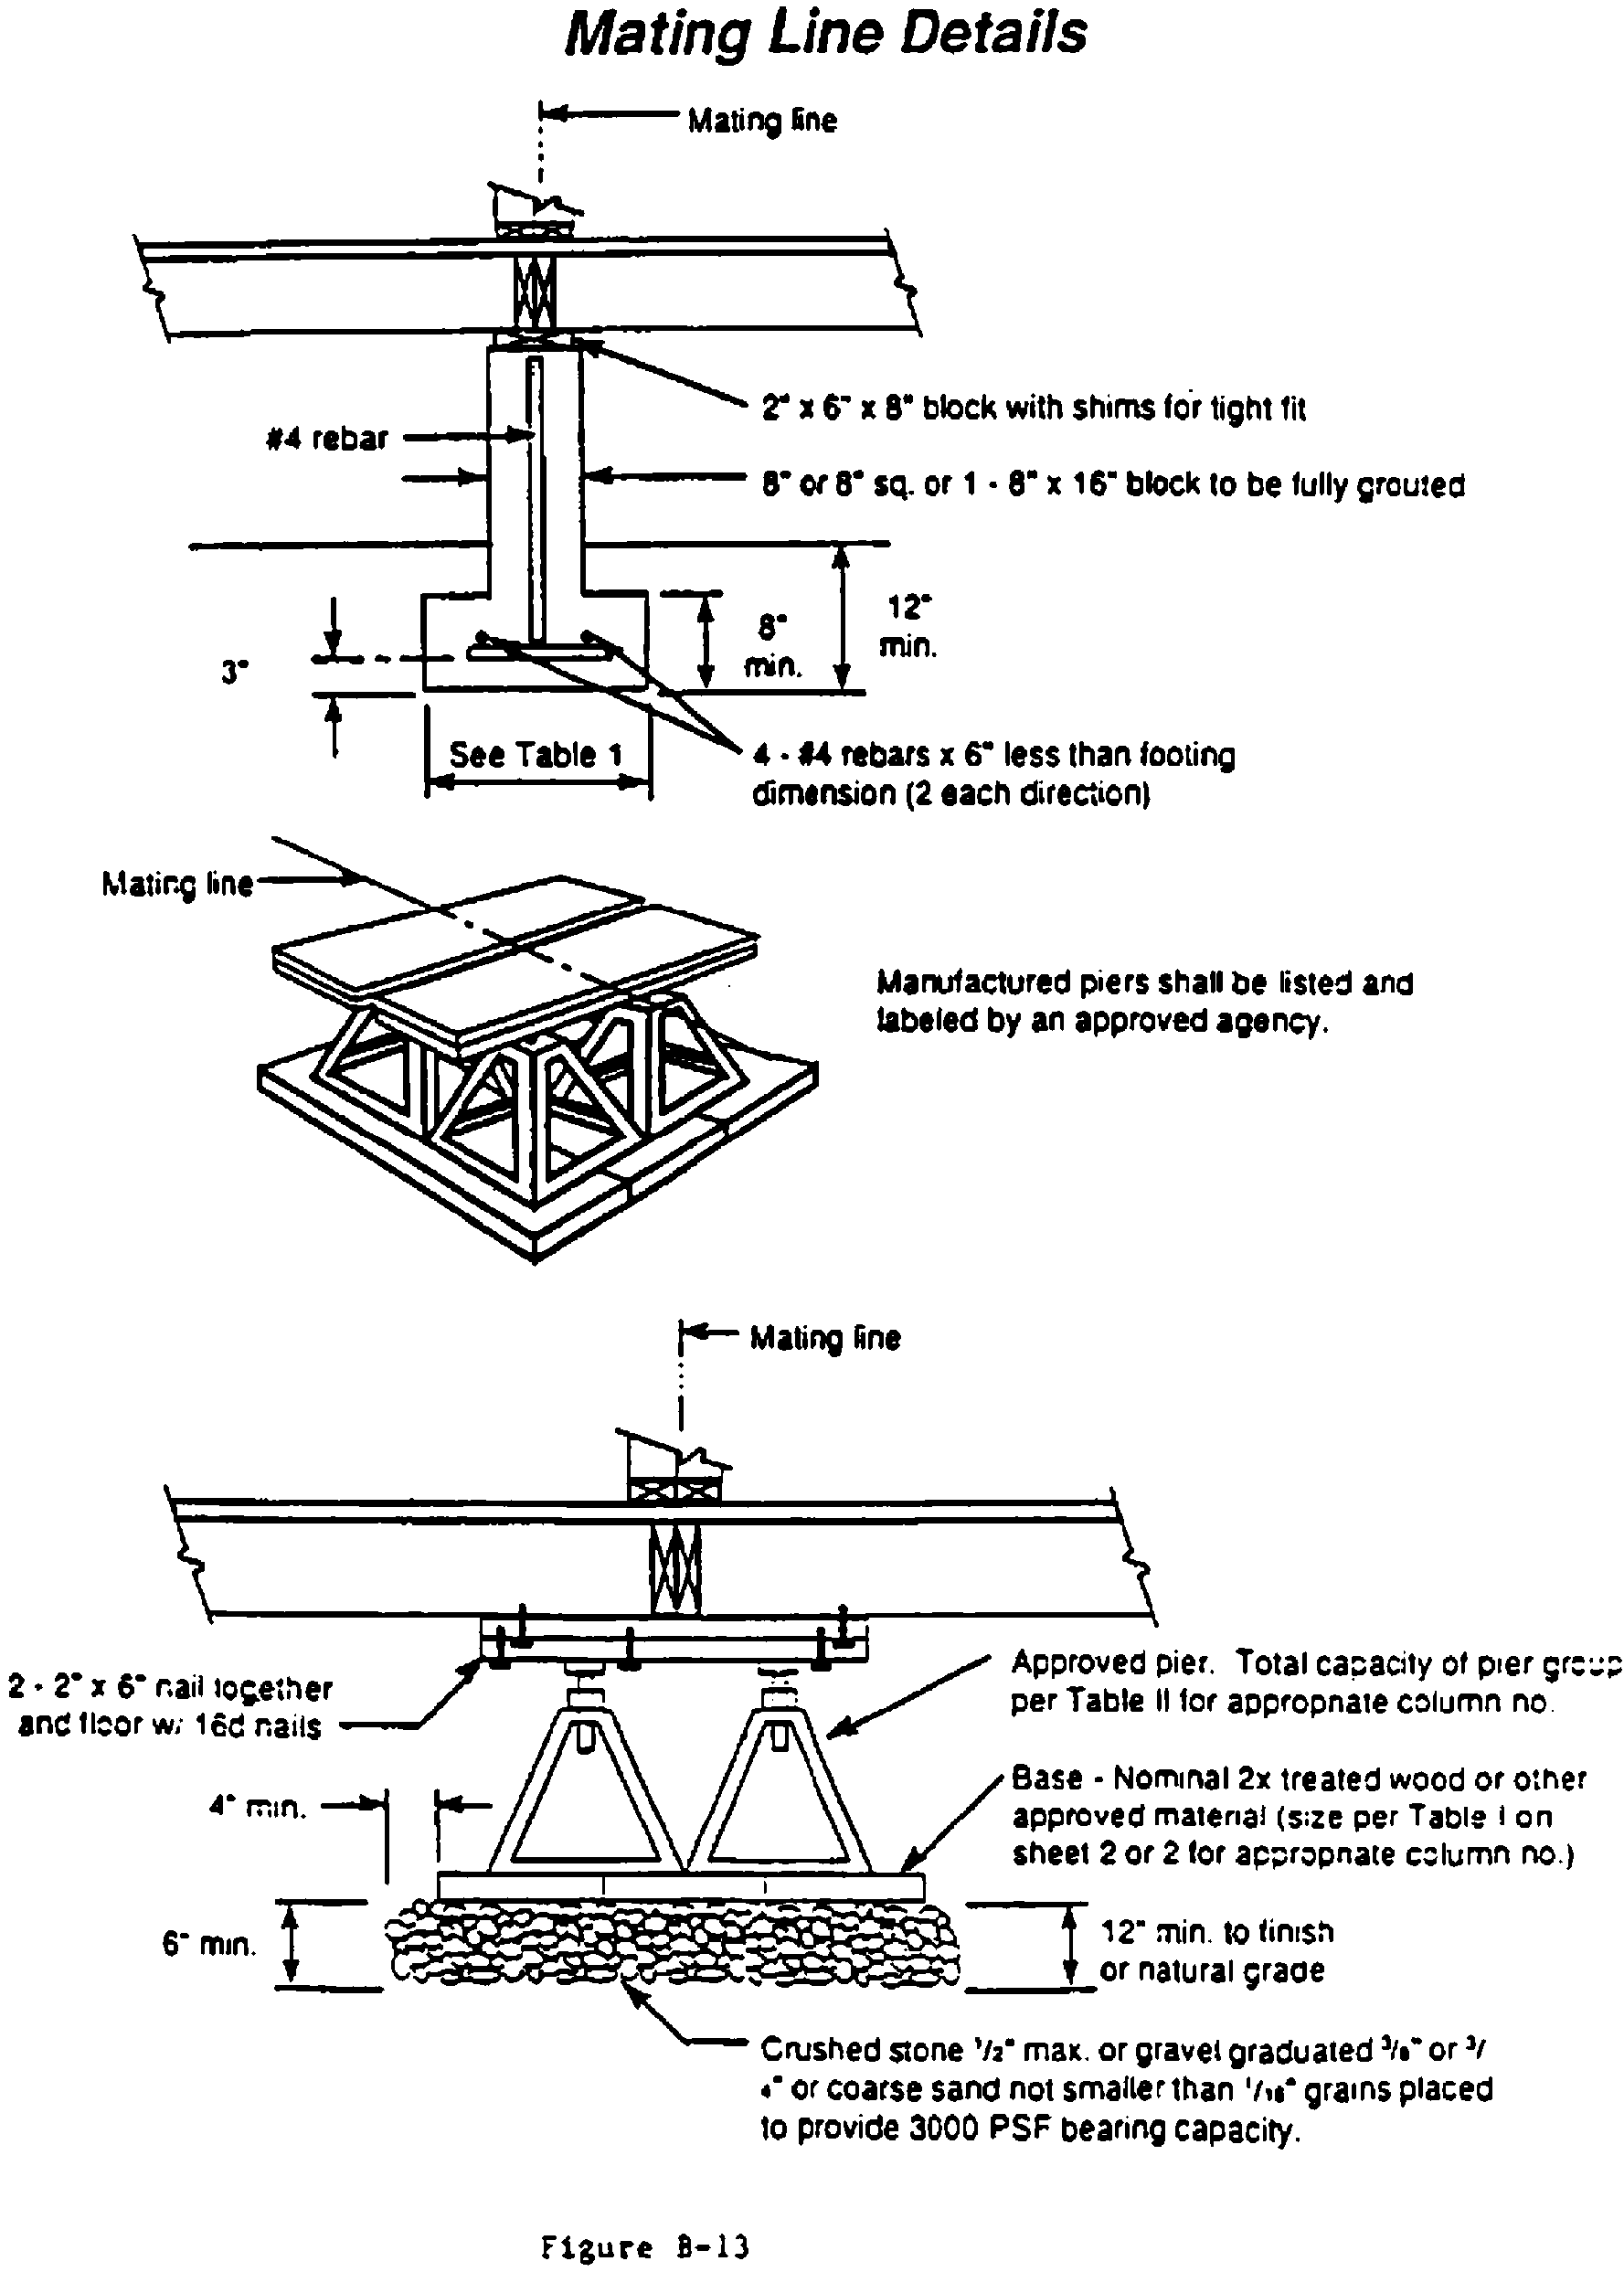 TYPICAL DESIGNS FOR LOAD-BEARING SUPPORTS FOR MANUFACTURED HOMES - Figure 11